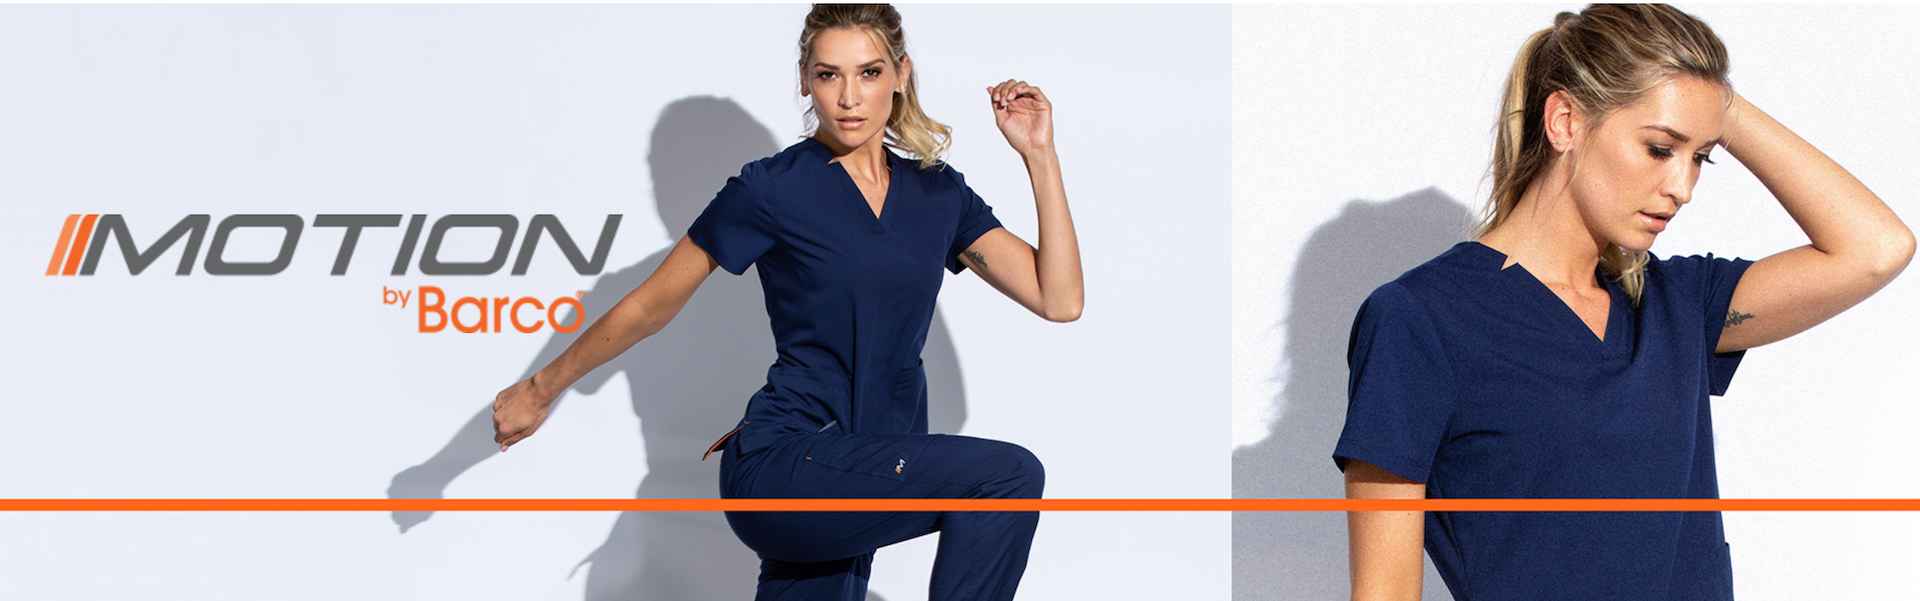 Motion by Barco Scrubs